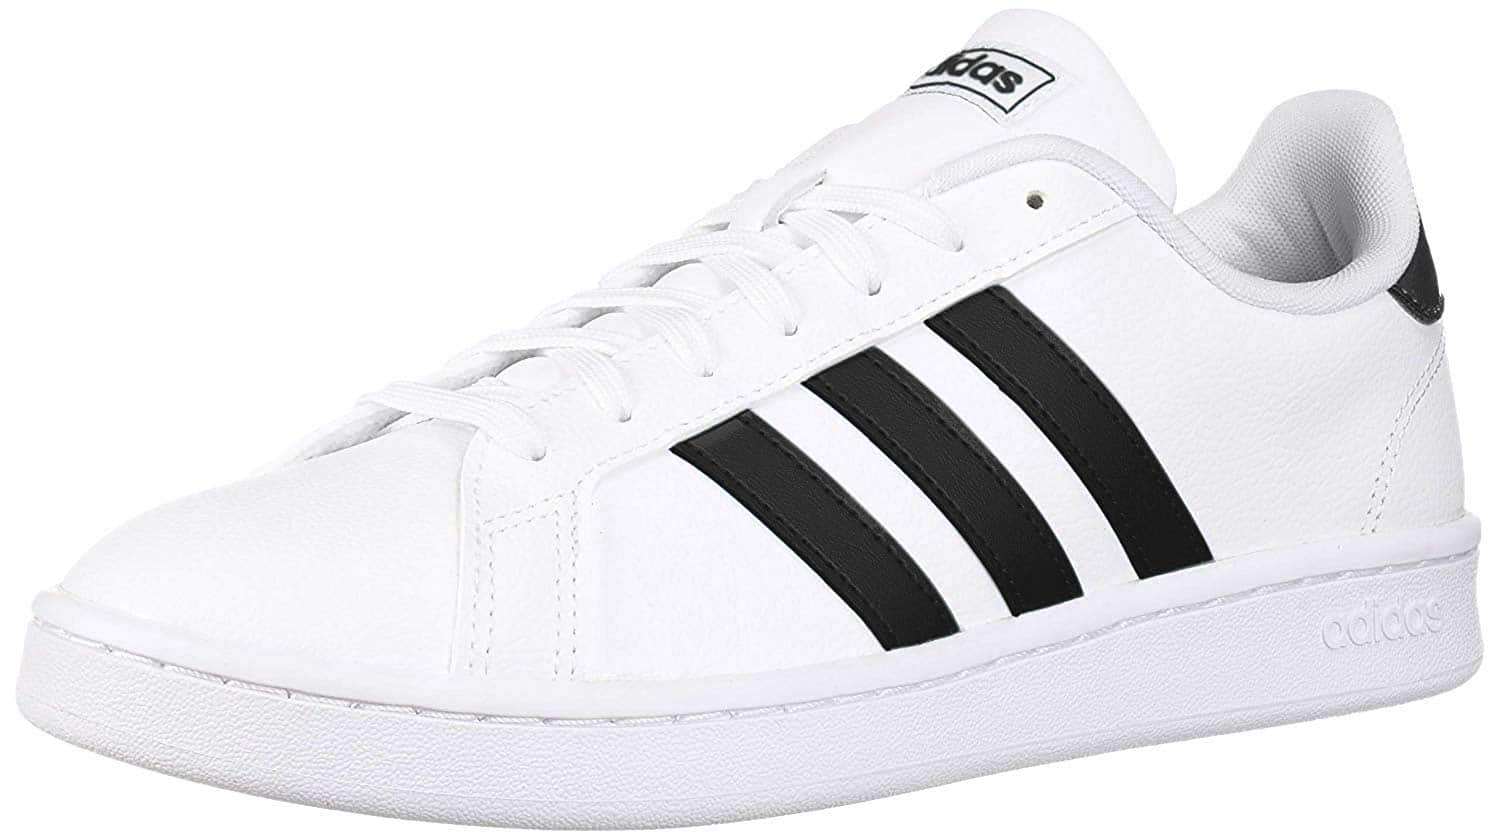 Adidas Women's Grand Court Sneaker- US 7 size only - $29.95  on Amazon